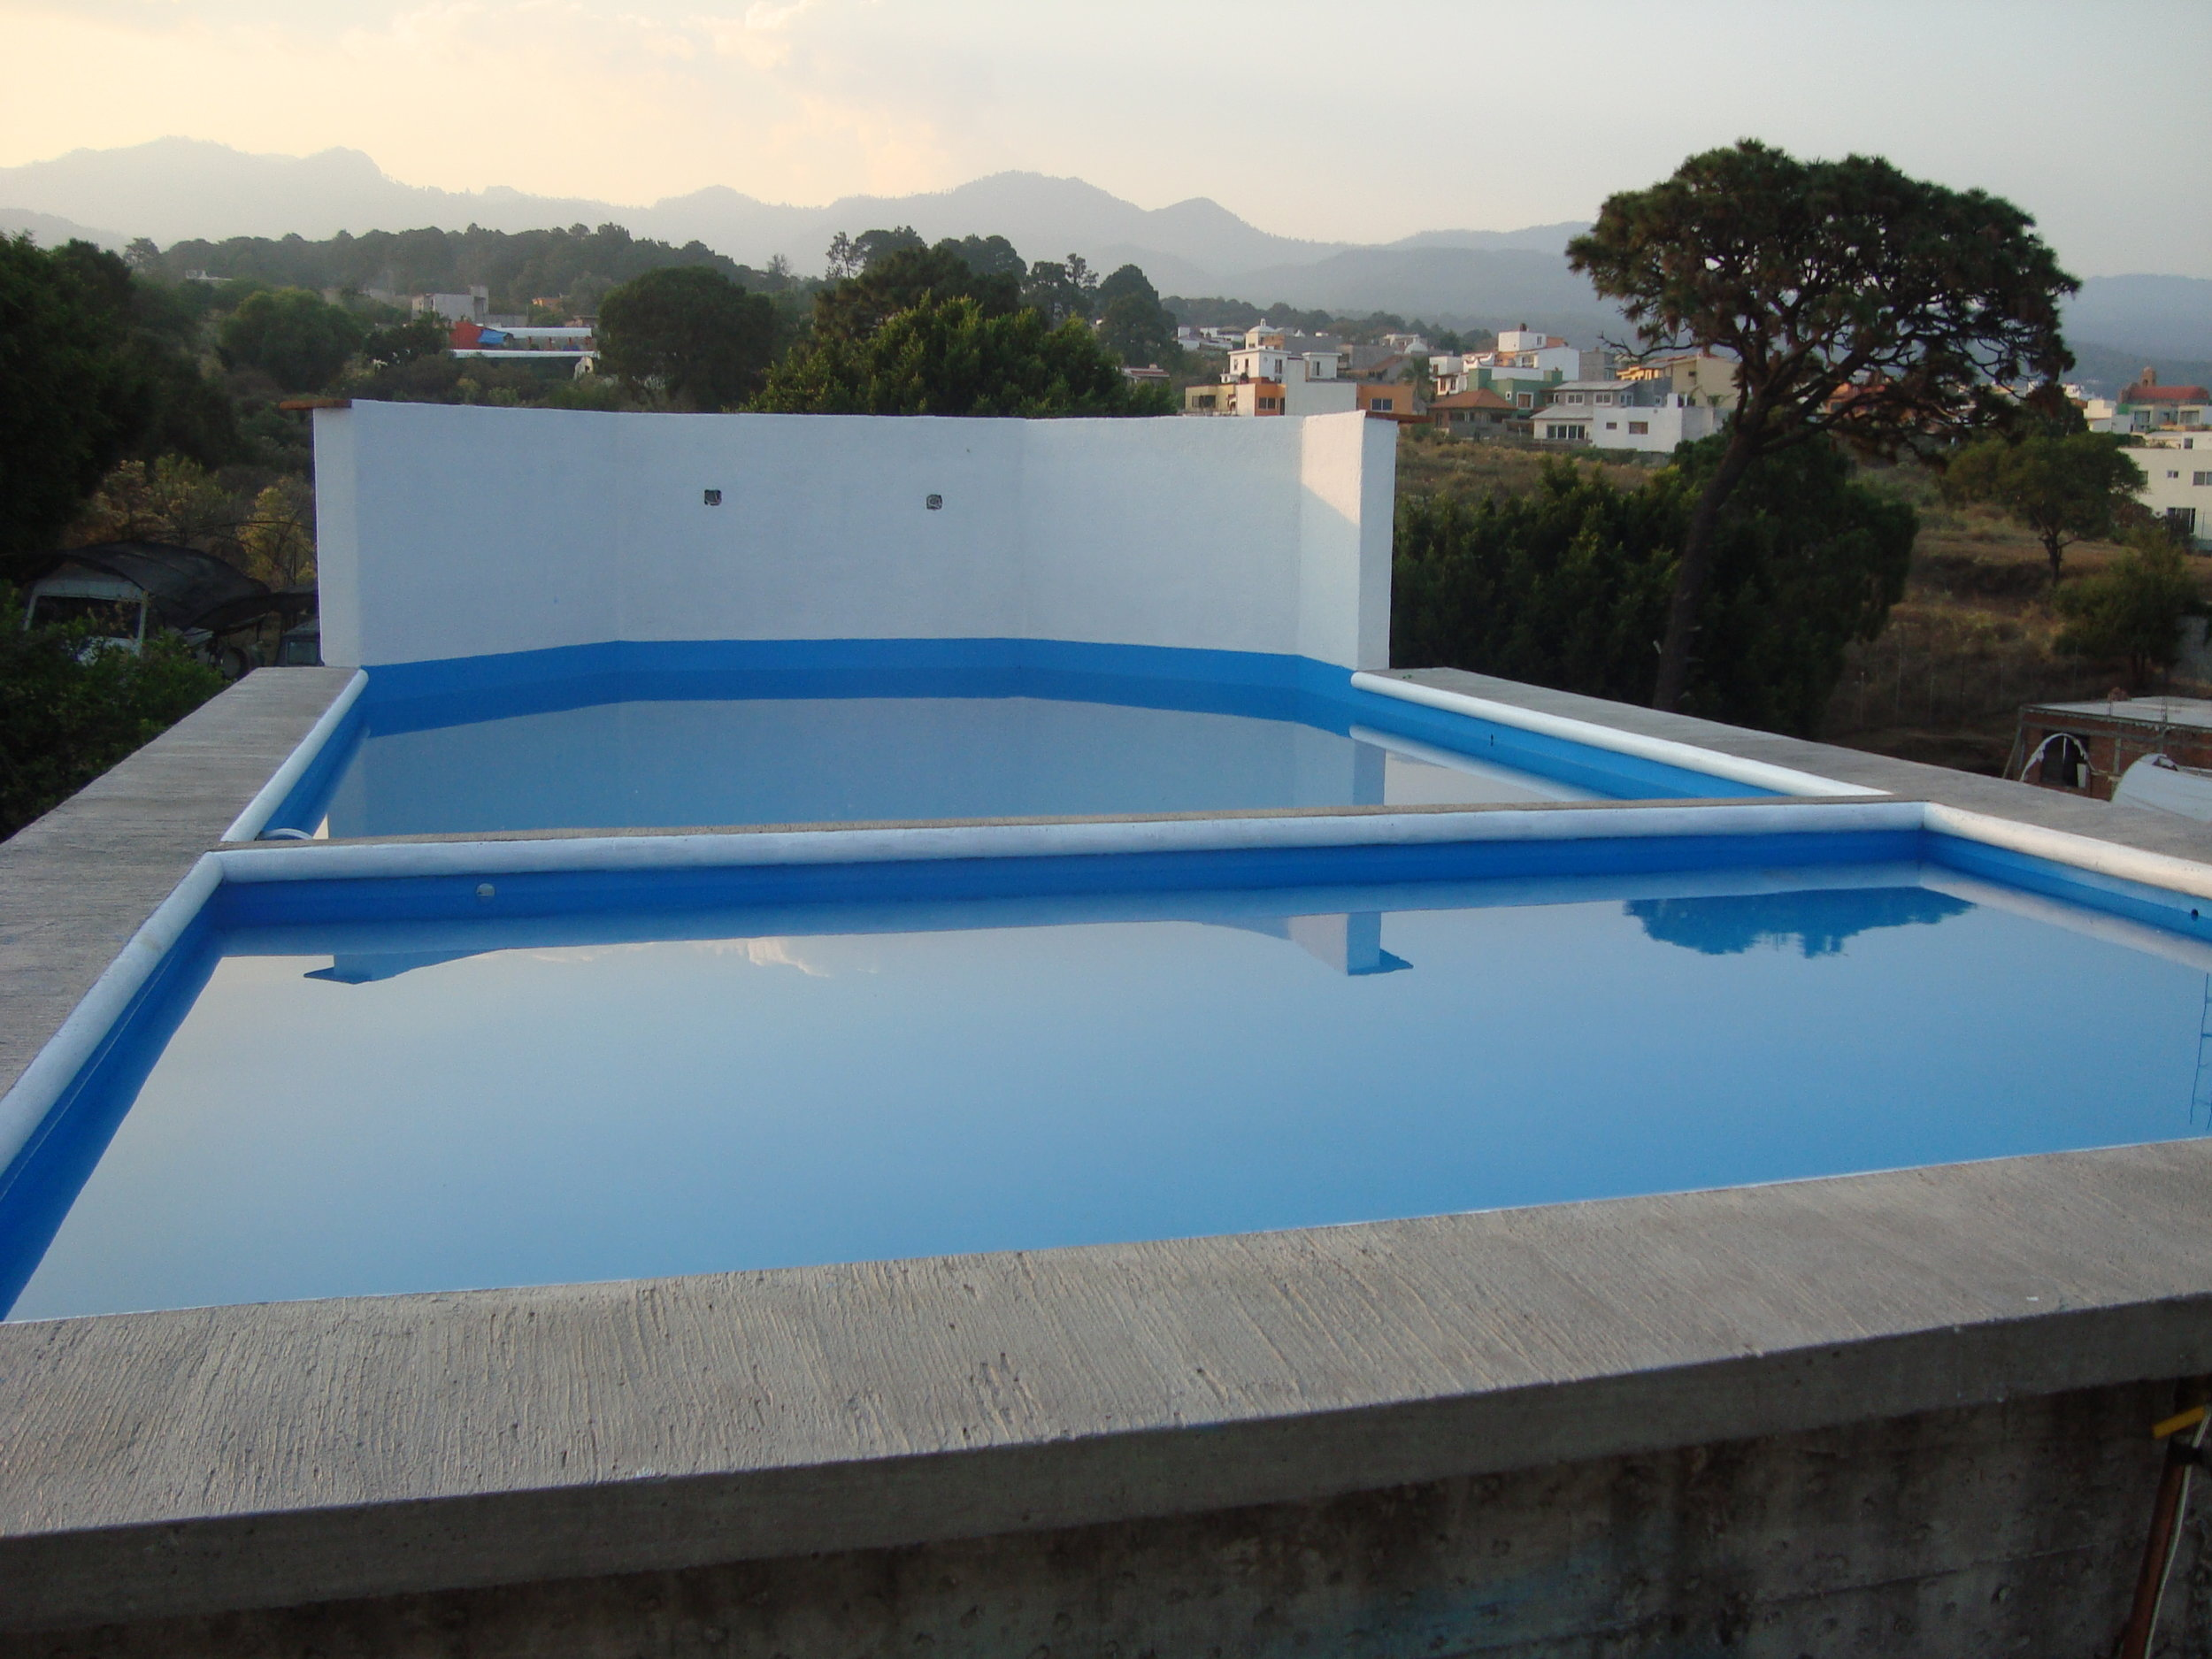 Pool on the rooftop.